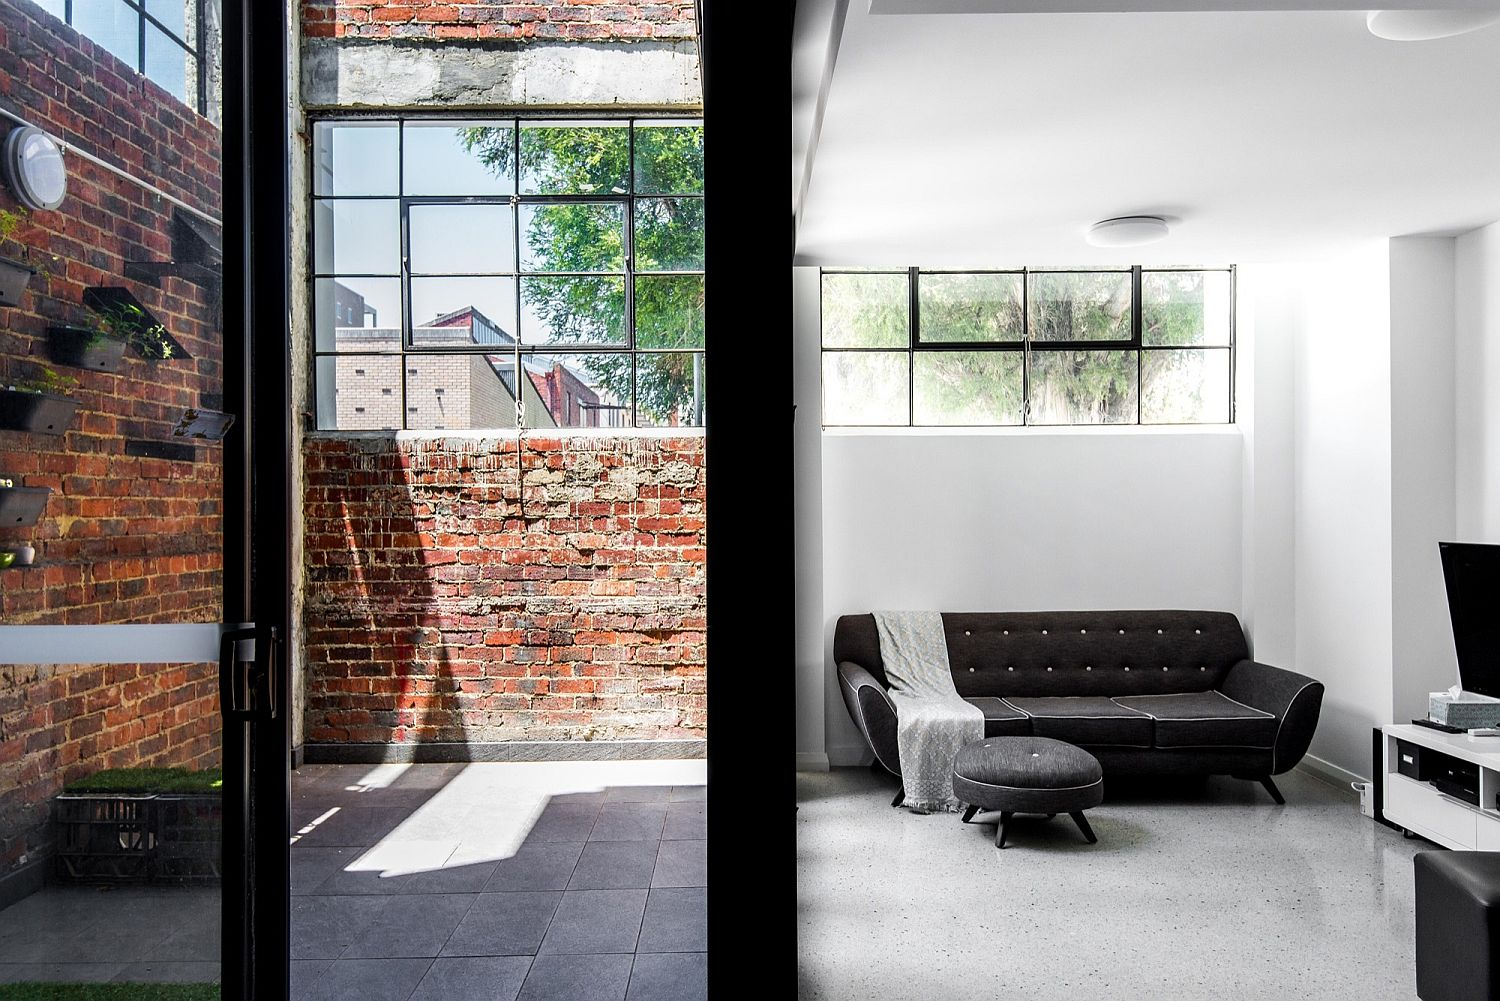 Exposed brick wall sections and windows preserve the classic appeal of the building